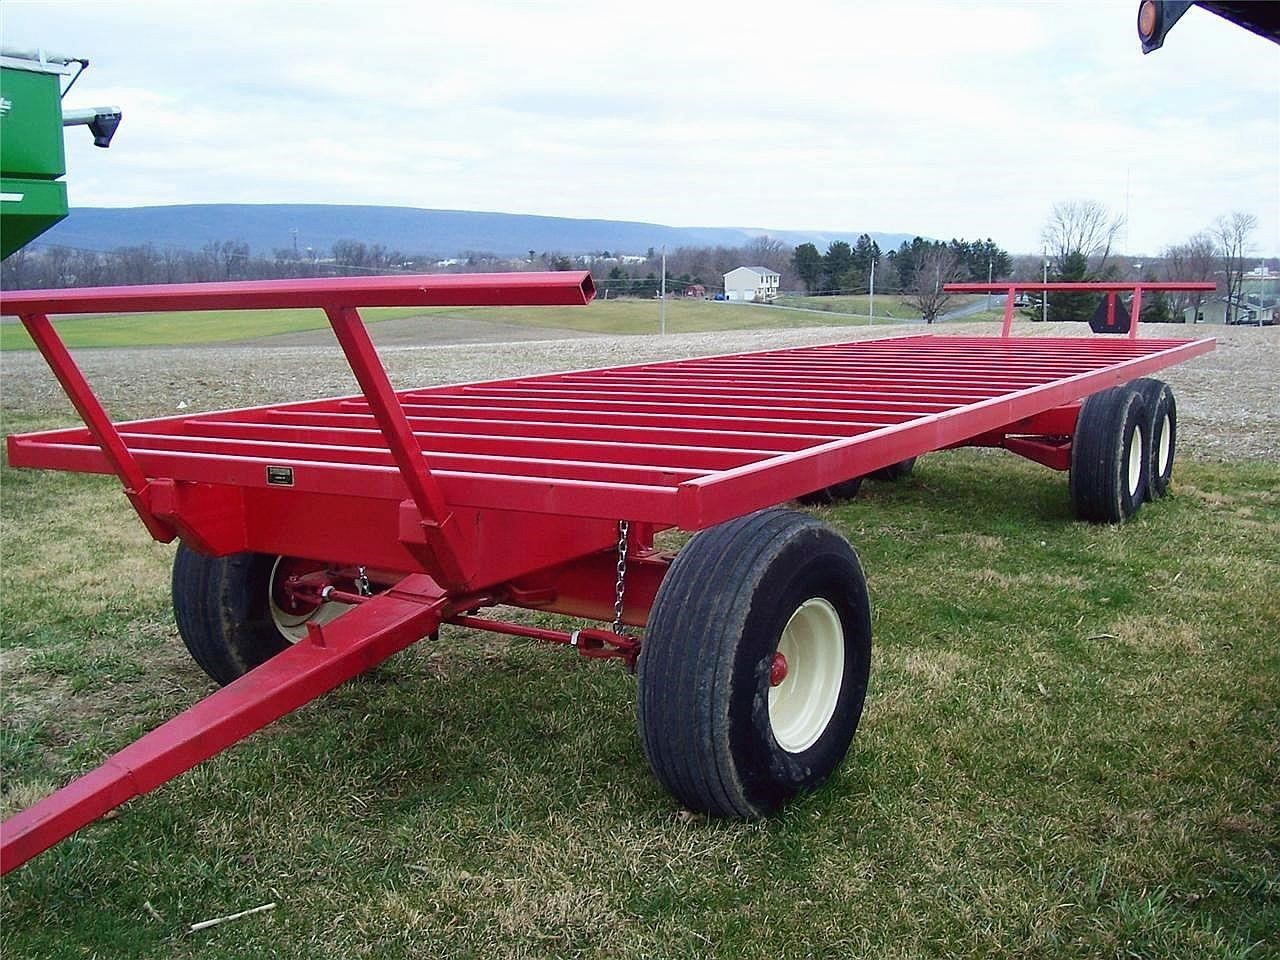 2020 Creekbank Welding 30 Bale Wagons and Trailer